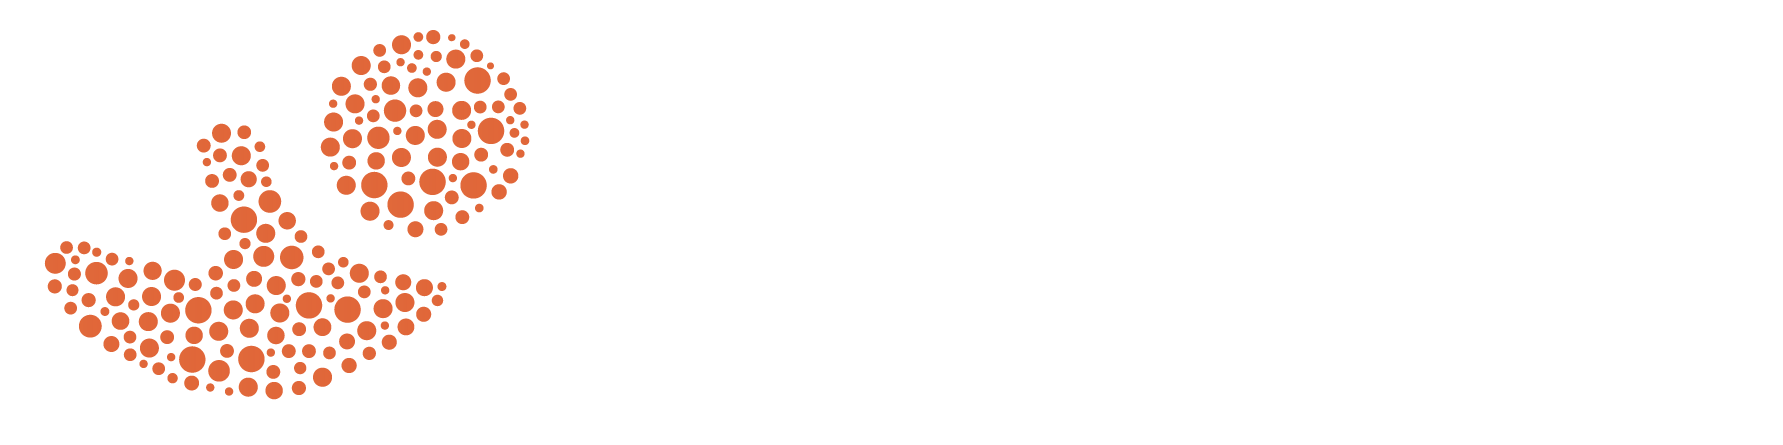 INC - Infant Nutrition Council